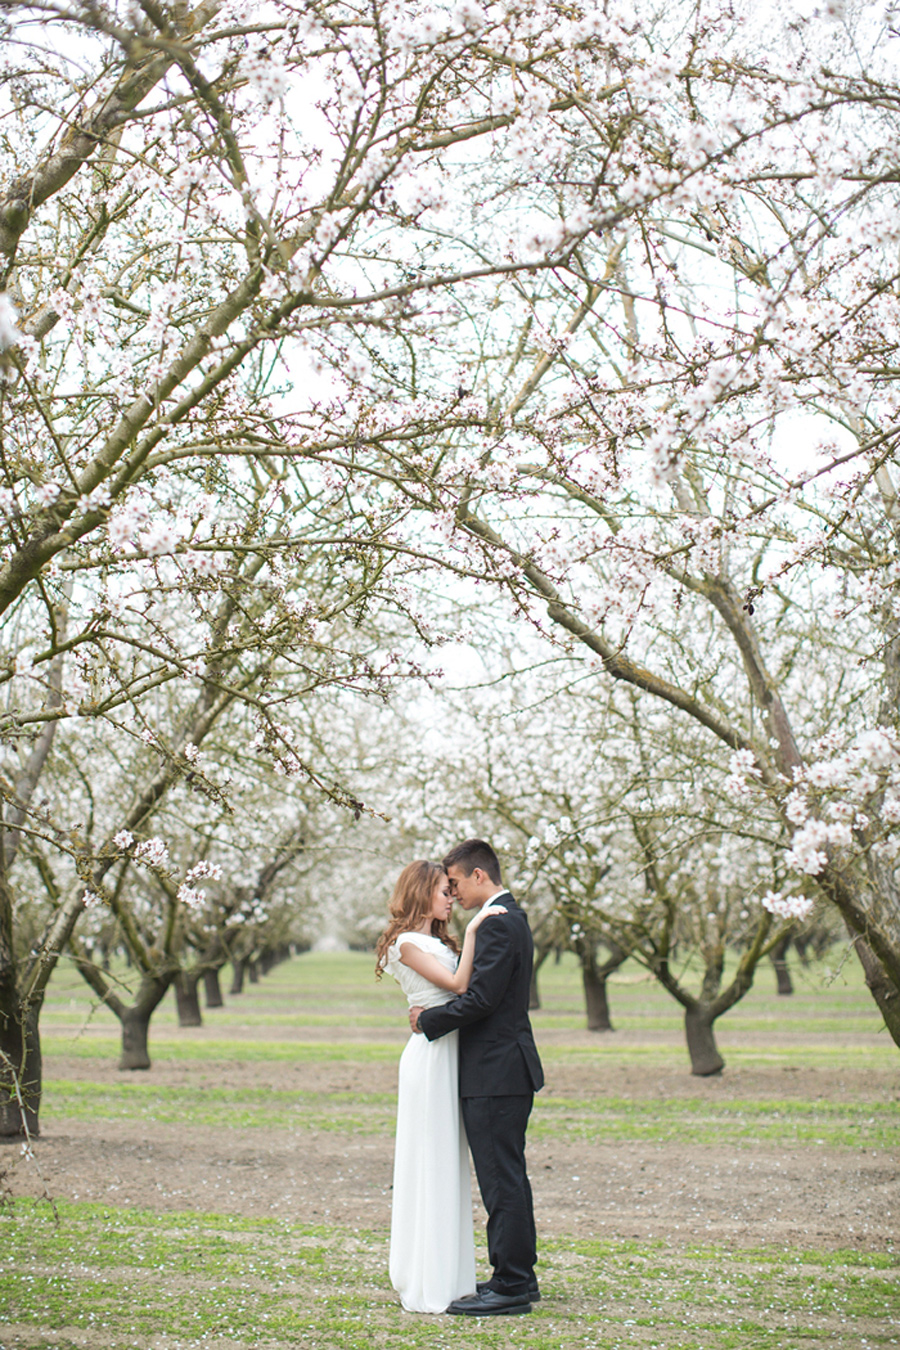 spring_wedding_pink_cherry_blossoms_1